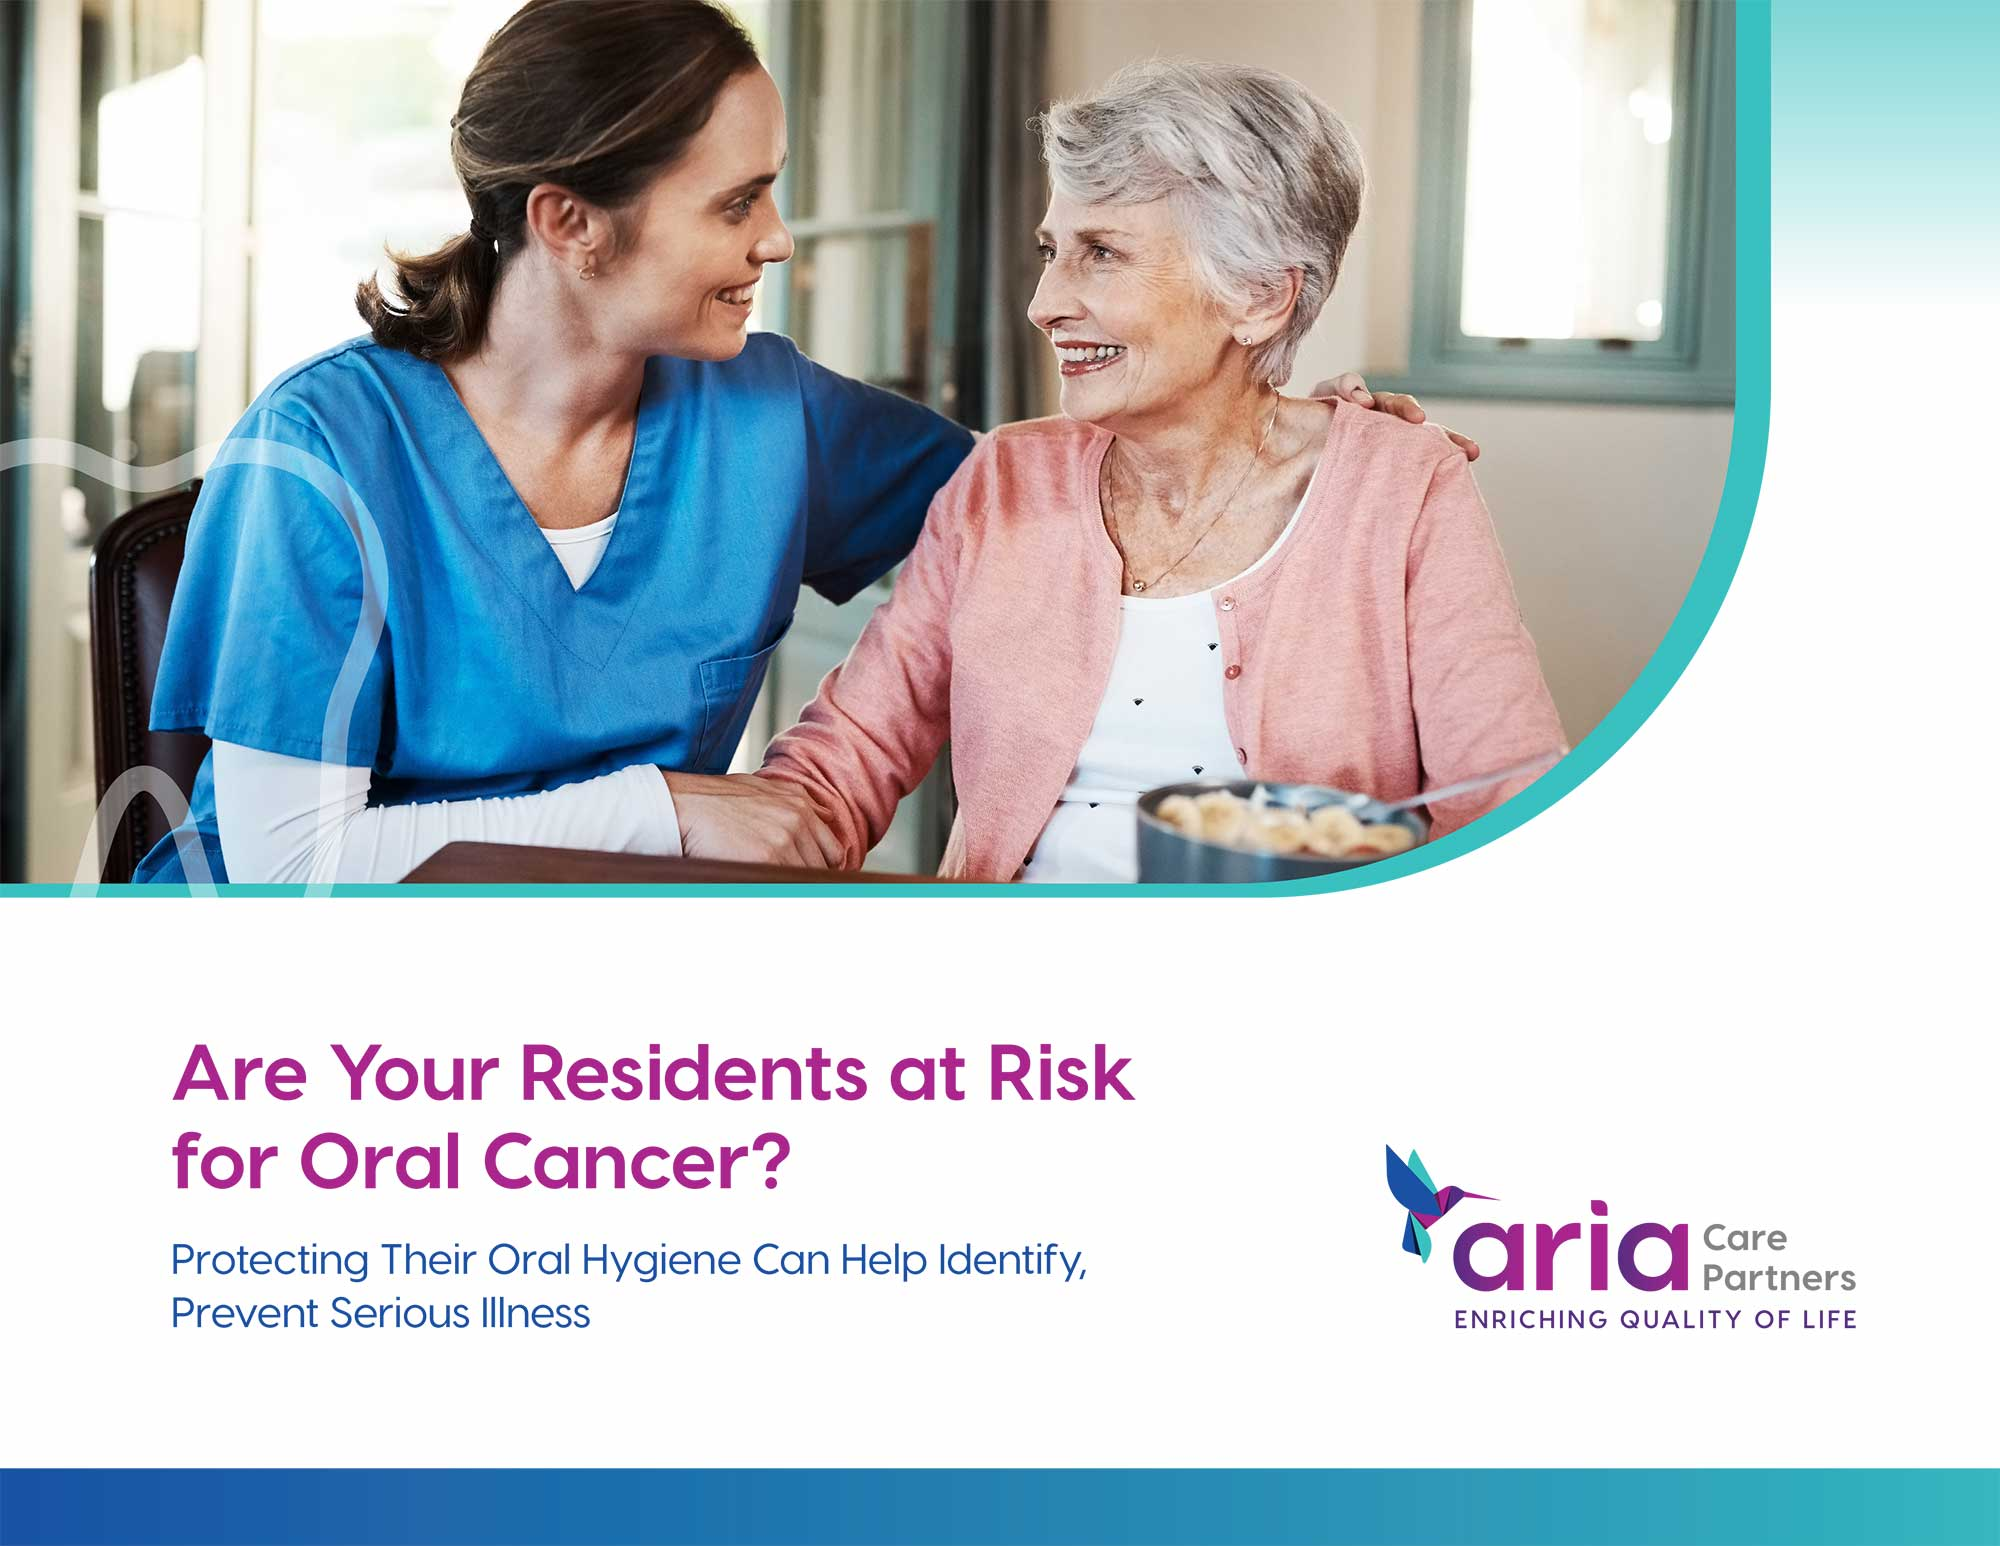 Are Your Residents at Risk for Oral Cancer?